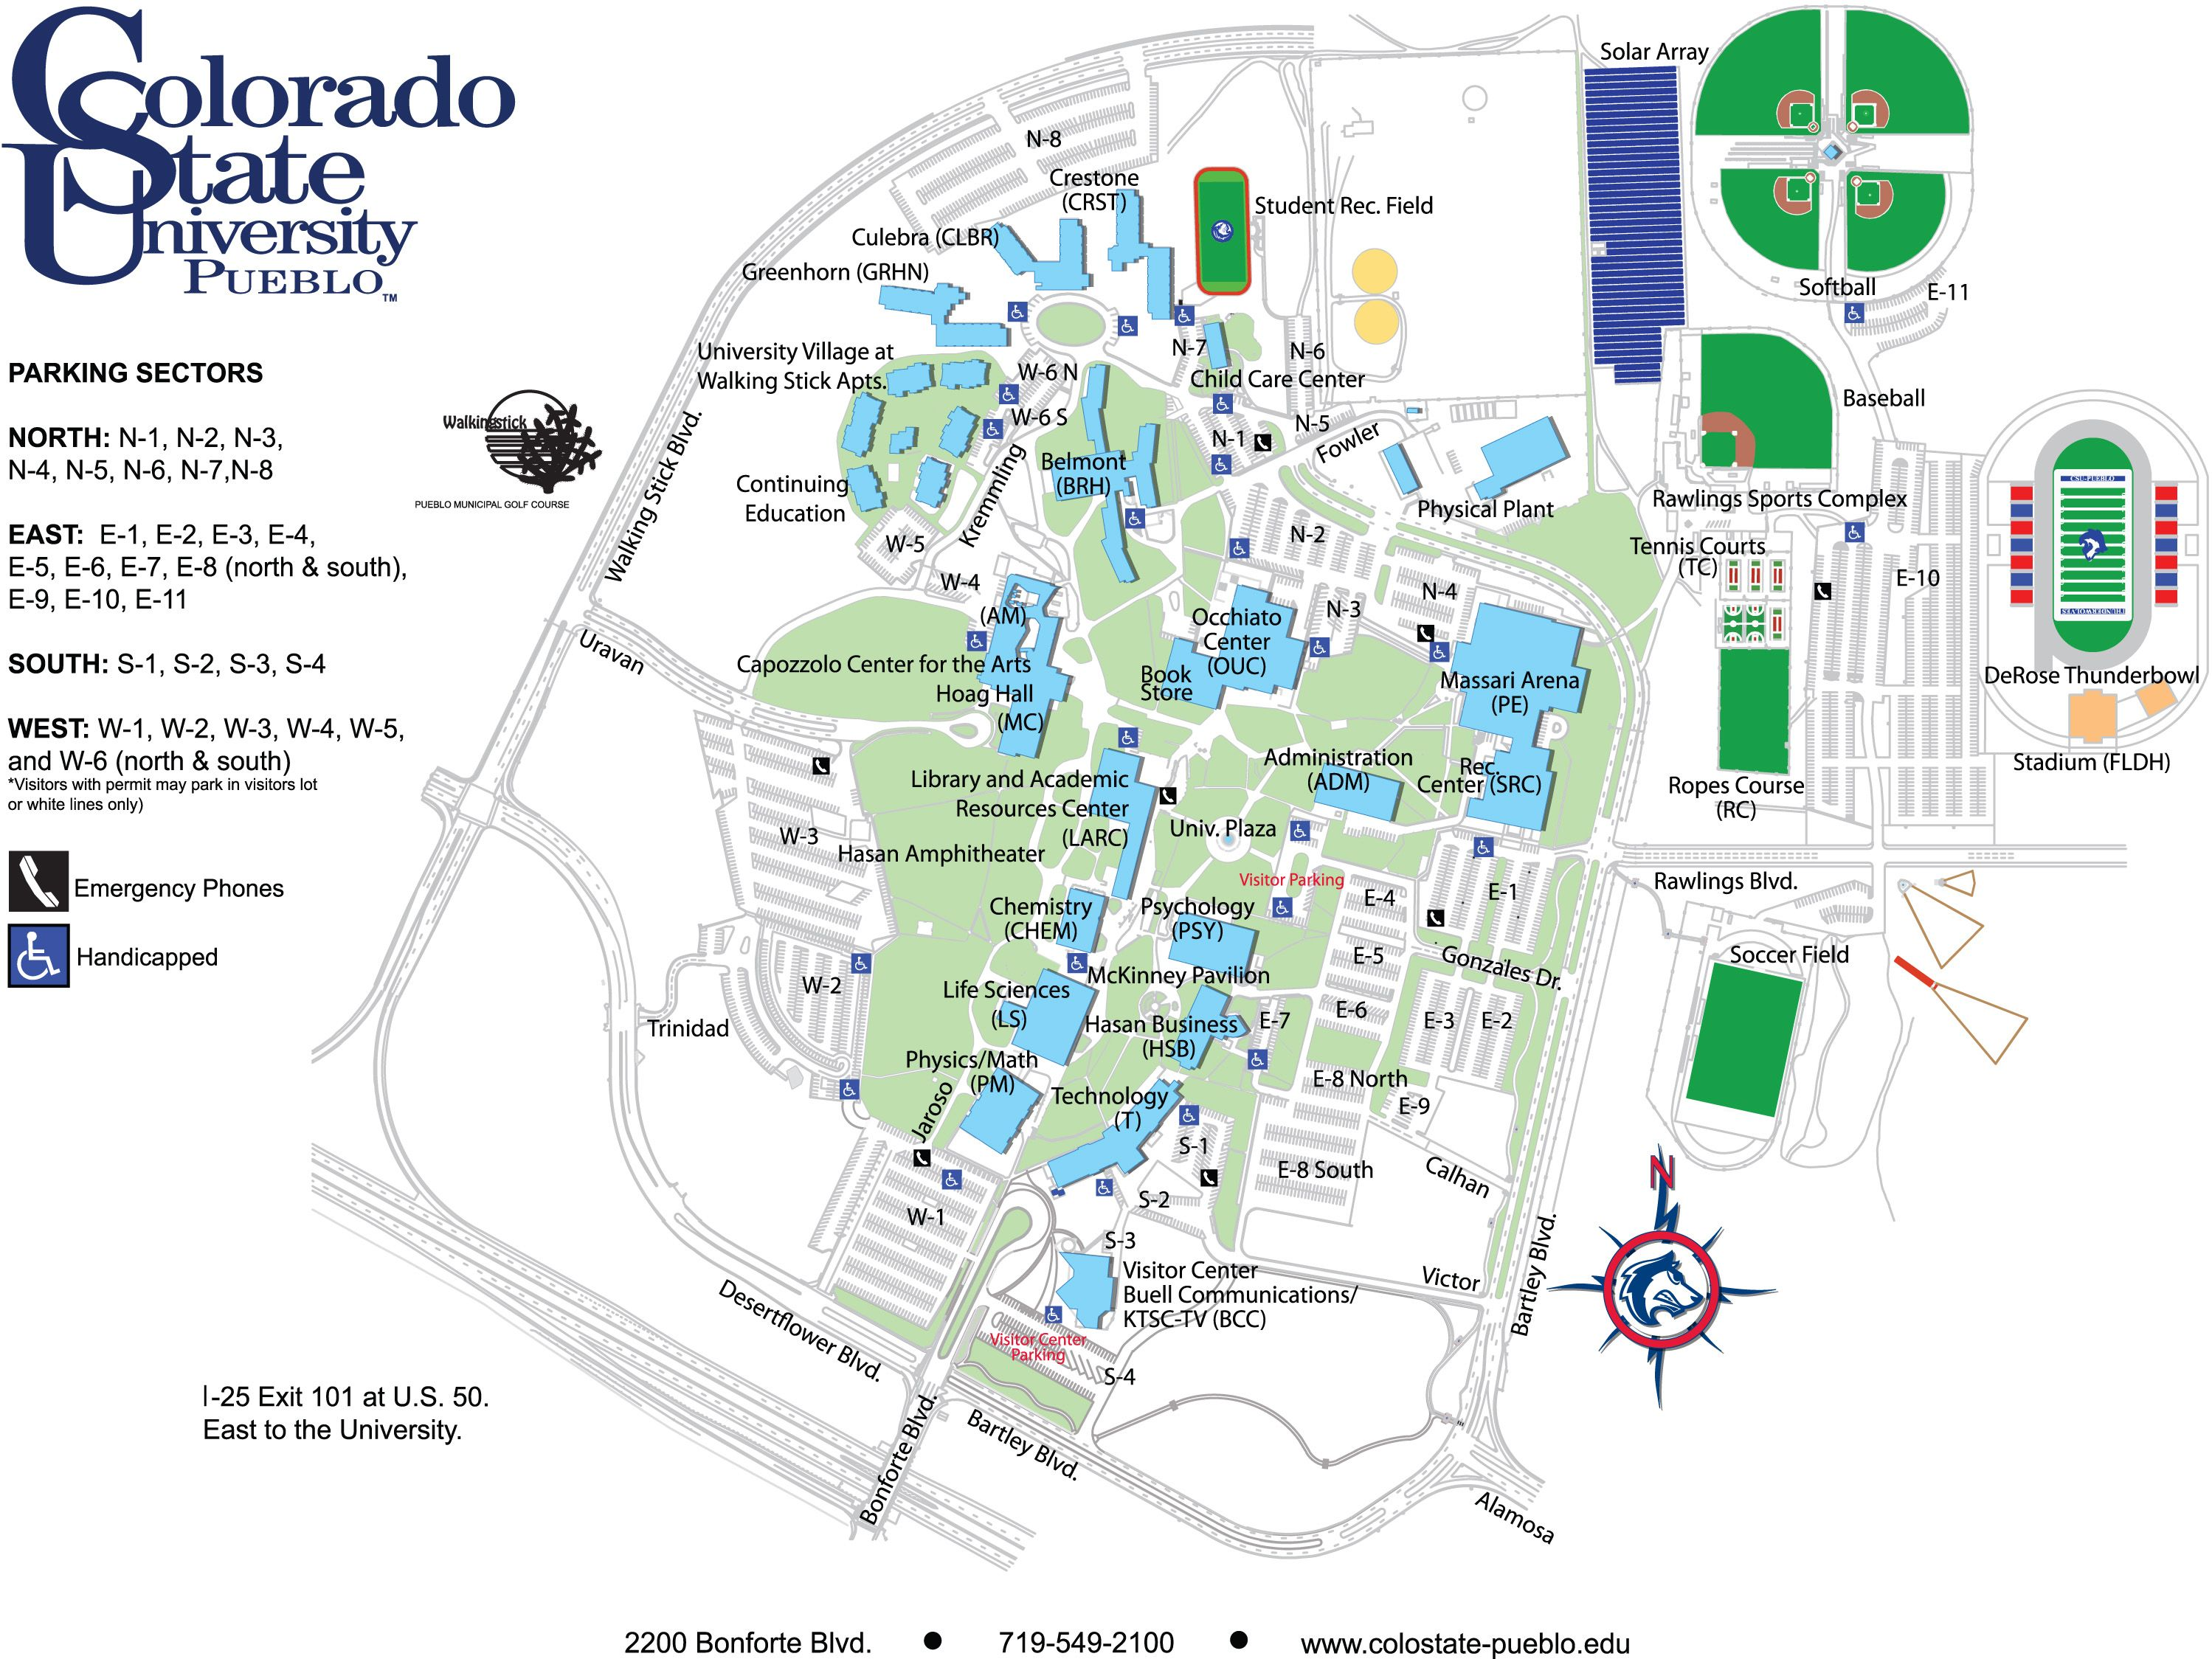 Colorado State University Campus Map | Colorado State ... on university of wisconsin-madison campus map, naval postgraduate school campus map, north texas university campus map, university of tennessee at chattanooga campus map, southern arkansas university campus map, monterey university campus map, washington & jefferson college campus map, rhode island university campus map, armstrong university campus map, salt lake community college campus map, un reno campus map, saint johns university campus map, california state university bakersfield campus map, uc davis campus map, the university of toledo campus map, tennessee technological university campus map, western state colorado university campus map, university of texas at san antonio campus map, university of louisiana at monroe campus map, golden gate university campus map,